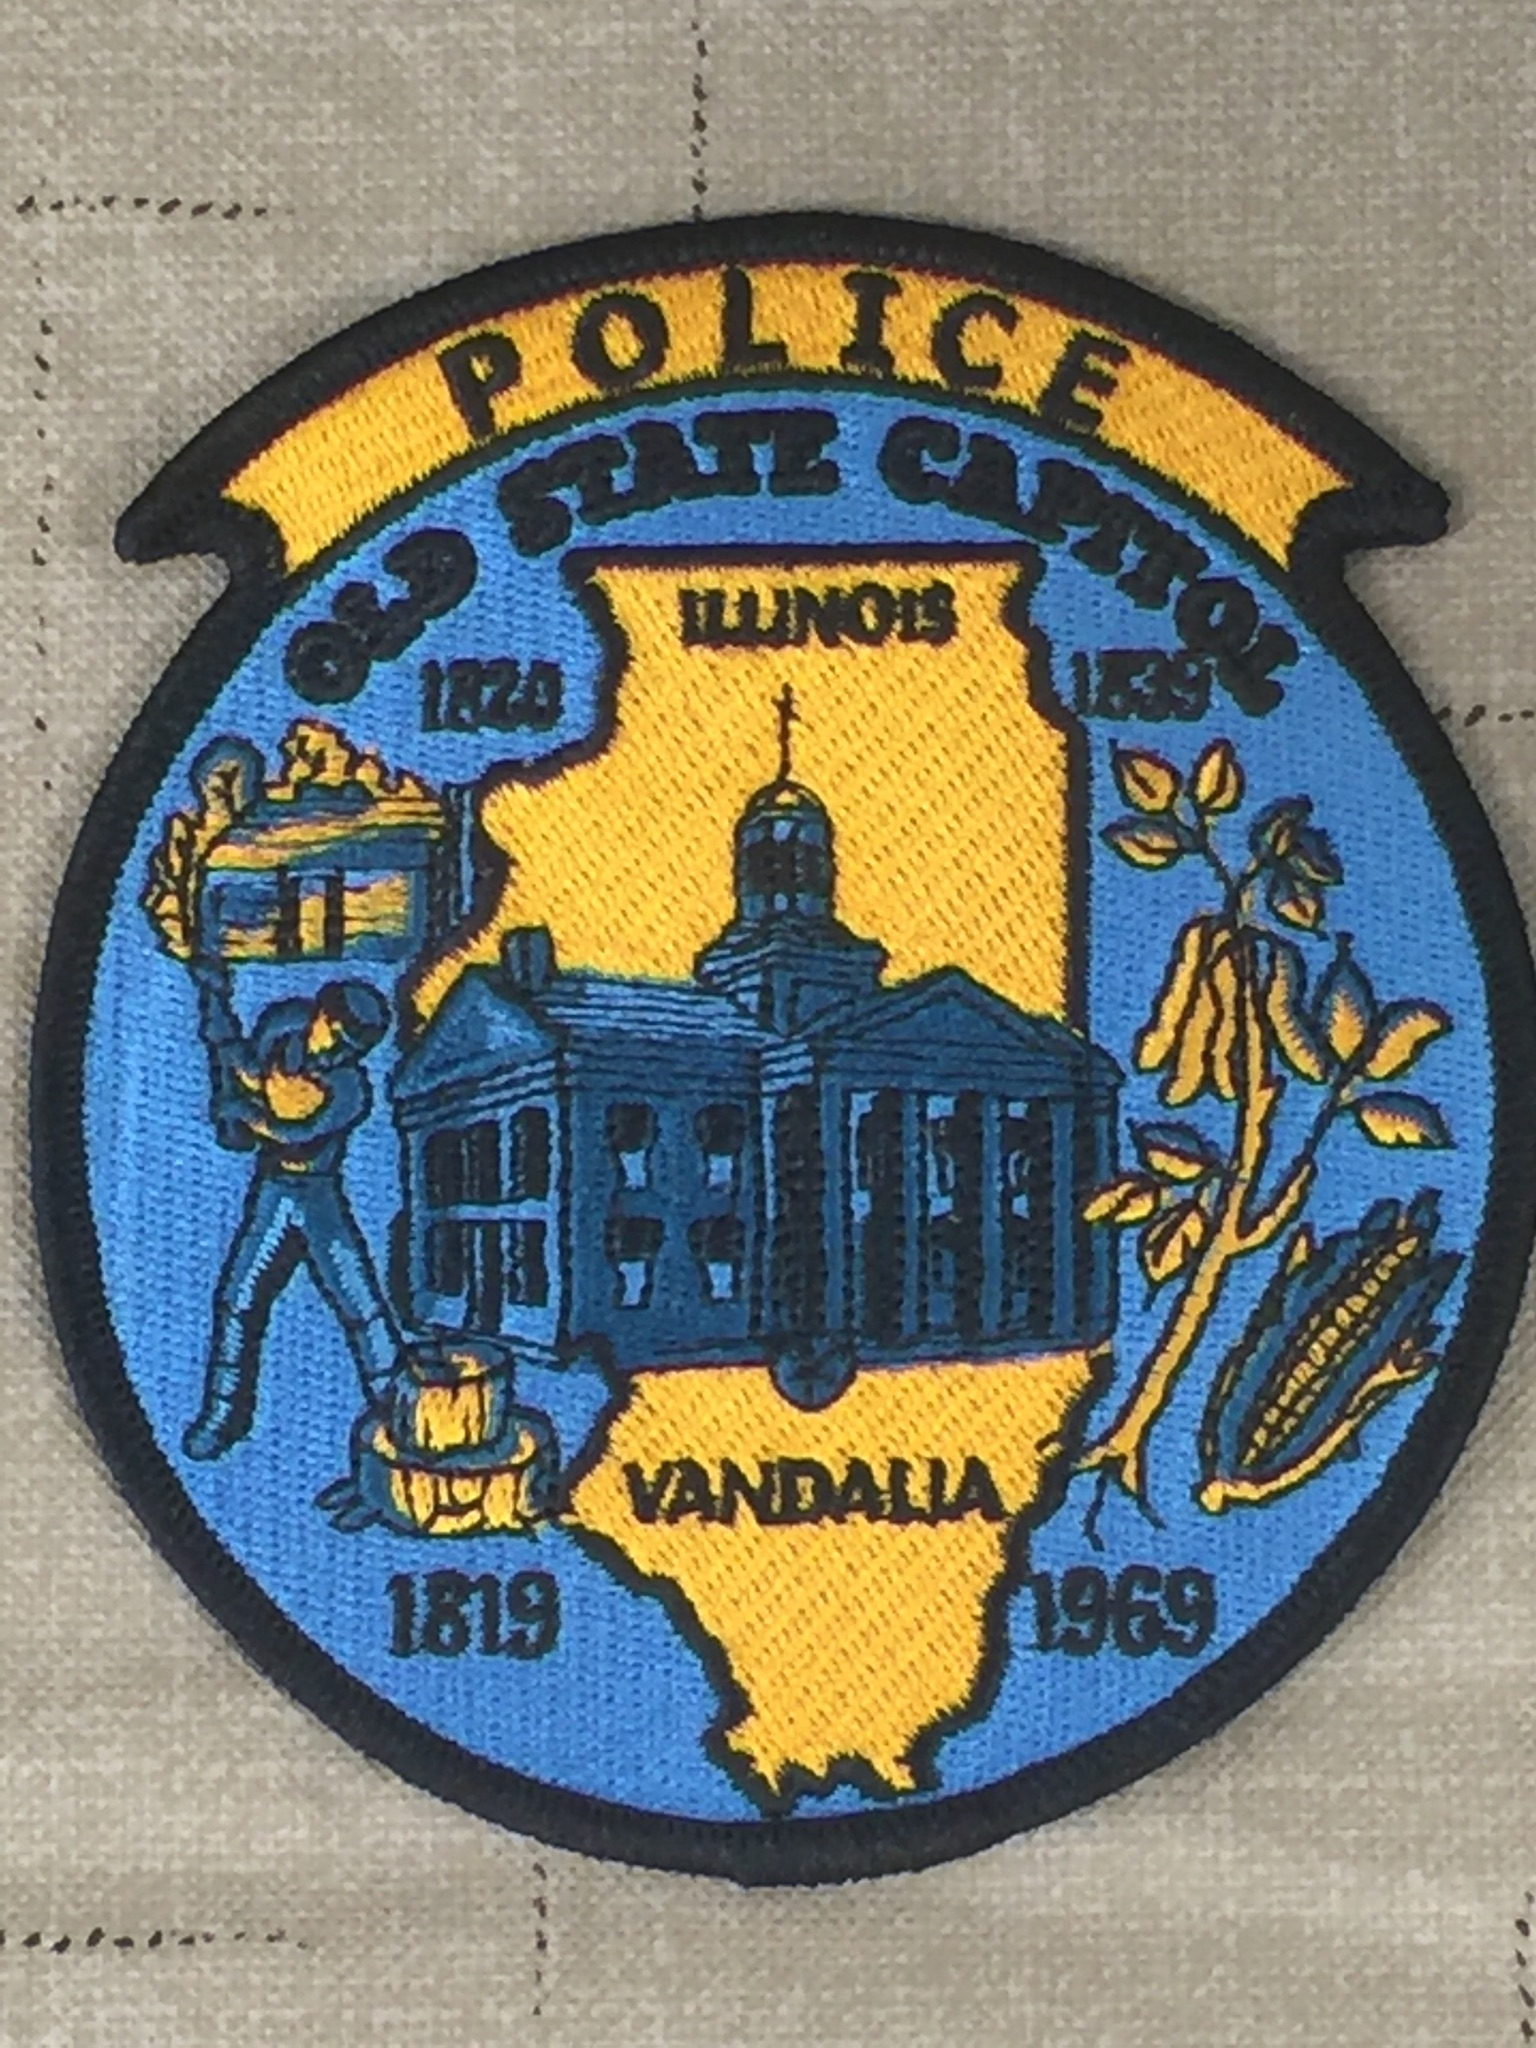 Vandalia PD report on Tuesday morning accident involving Vandalia School Bus